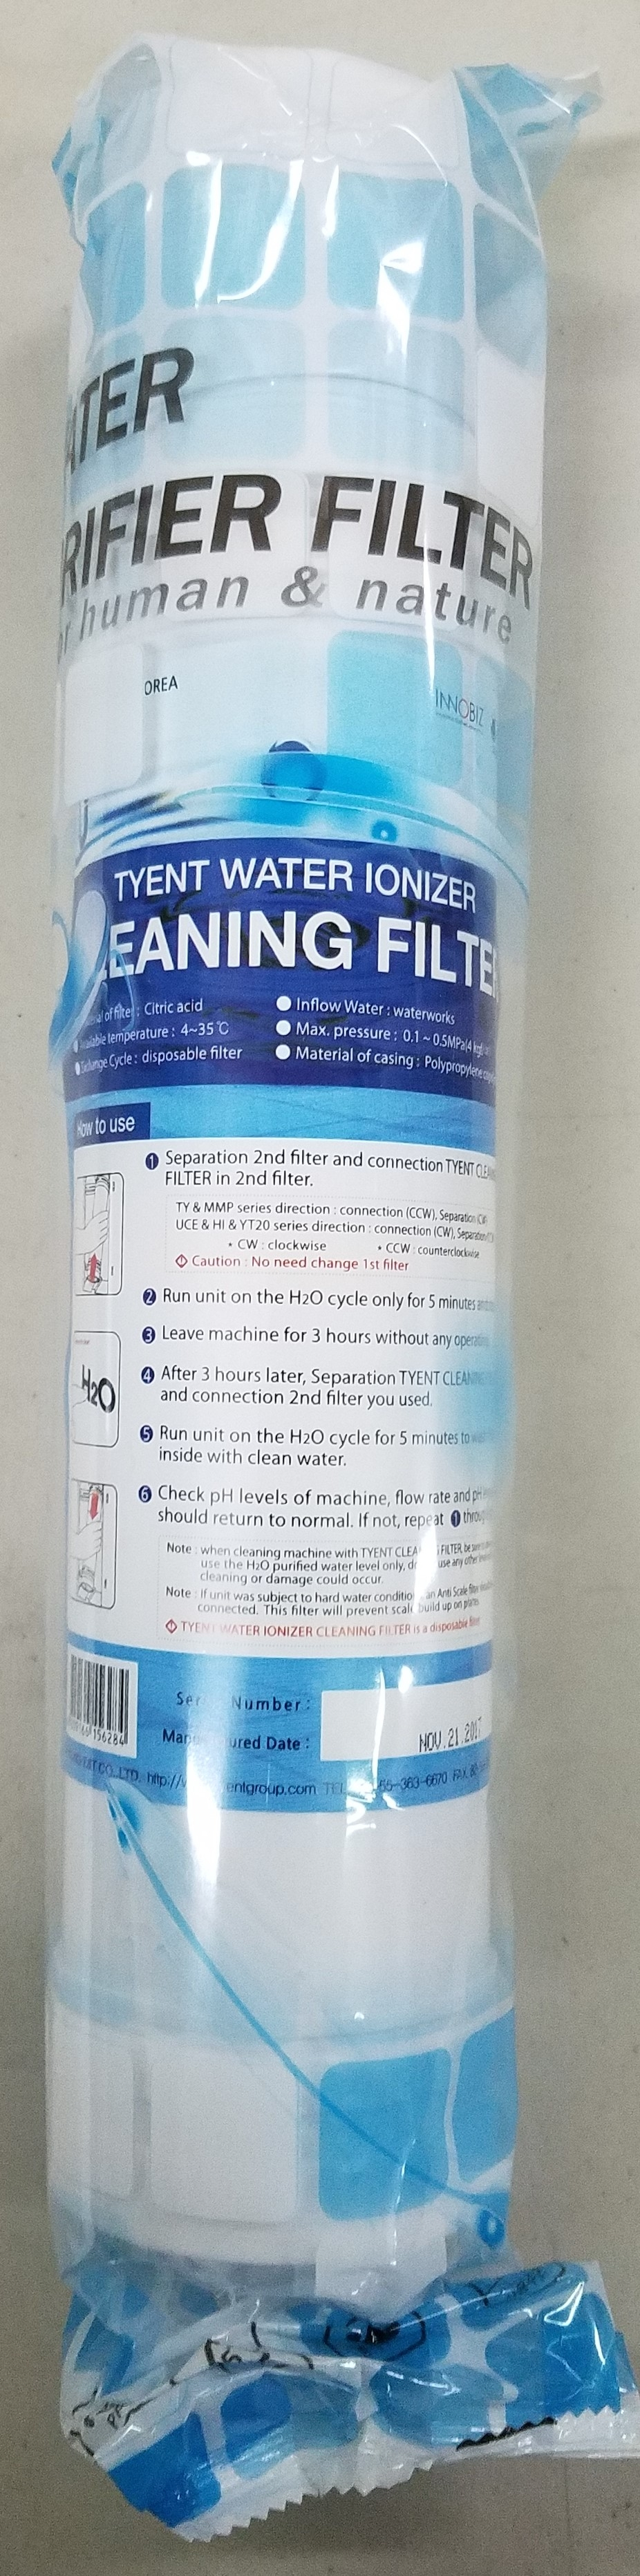 Image of Edge-9 Ionizer Cleaning Filter